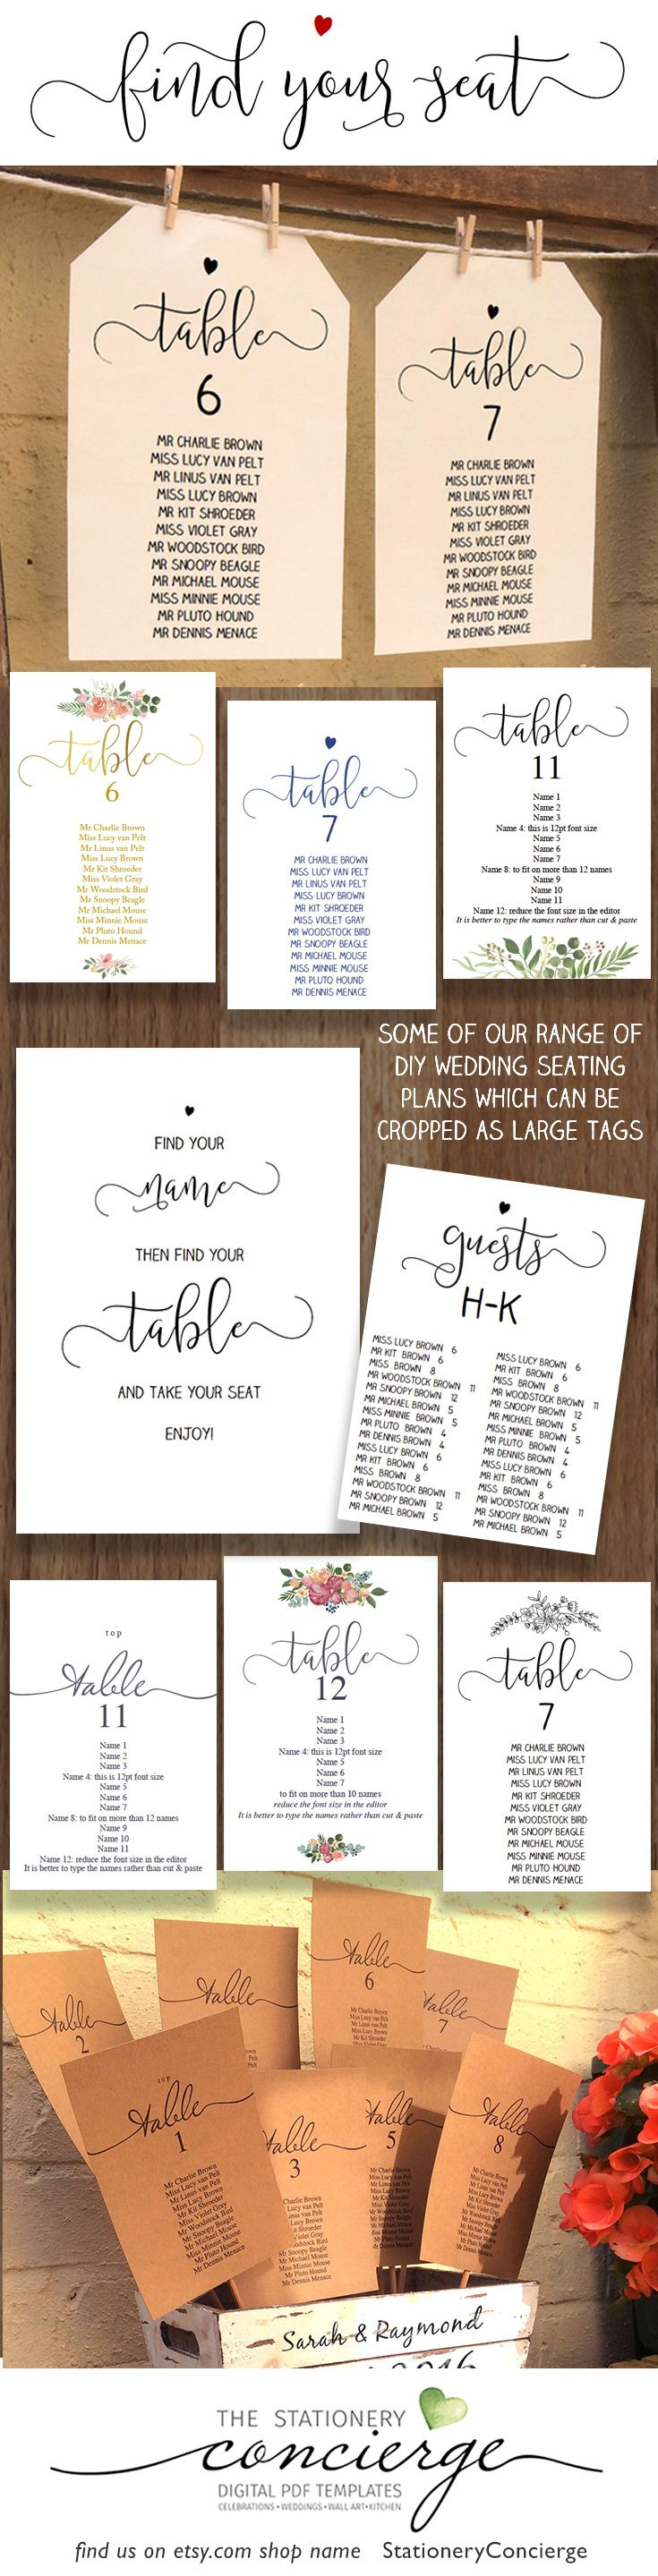 "A range of wedding seating plans to instantly download, edit & print. Most come in a choice of 5""x7"" or 6""x4"" cards which can also be cropped as large tags. includes gold versions a nd designs with our own unique illustrations & font."